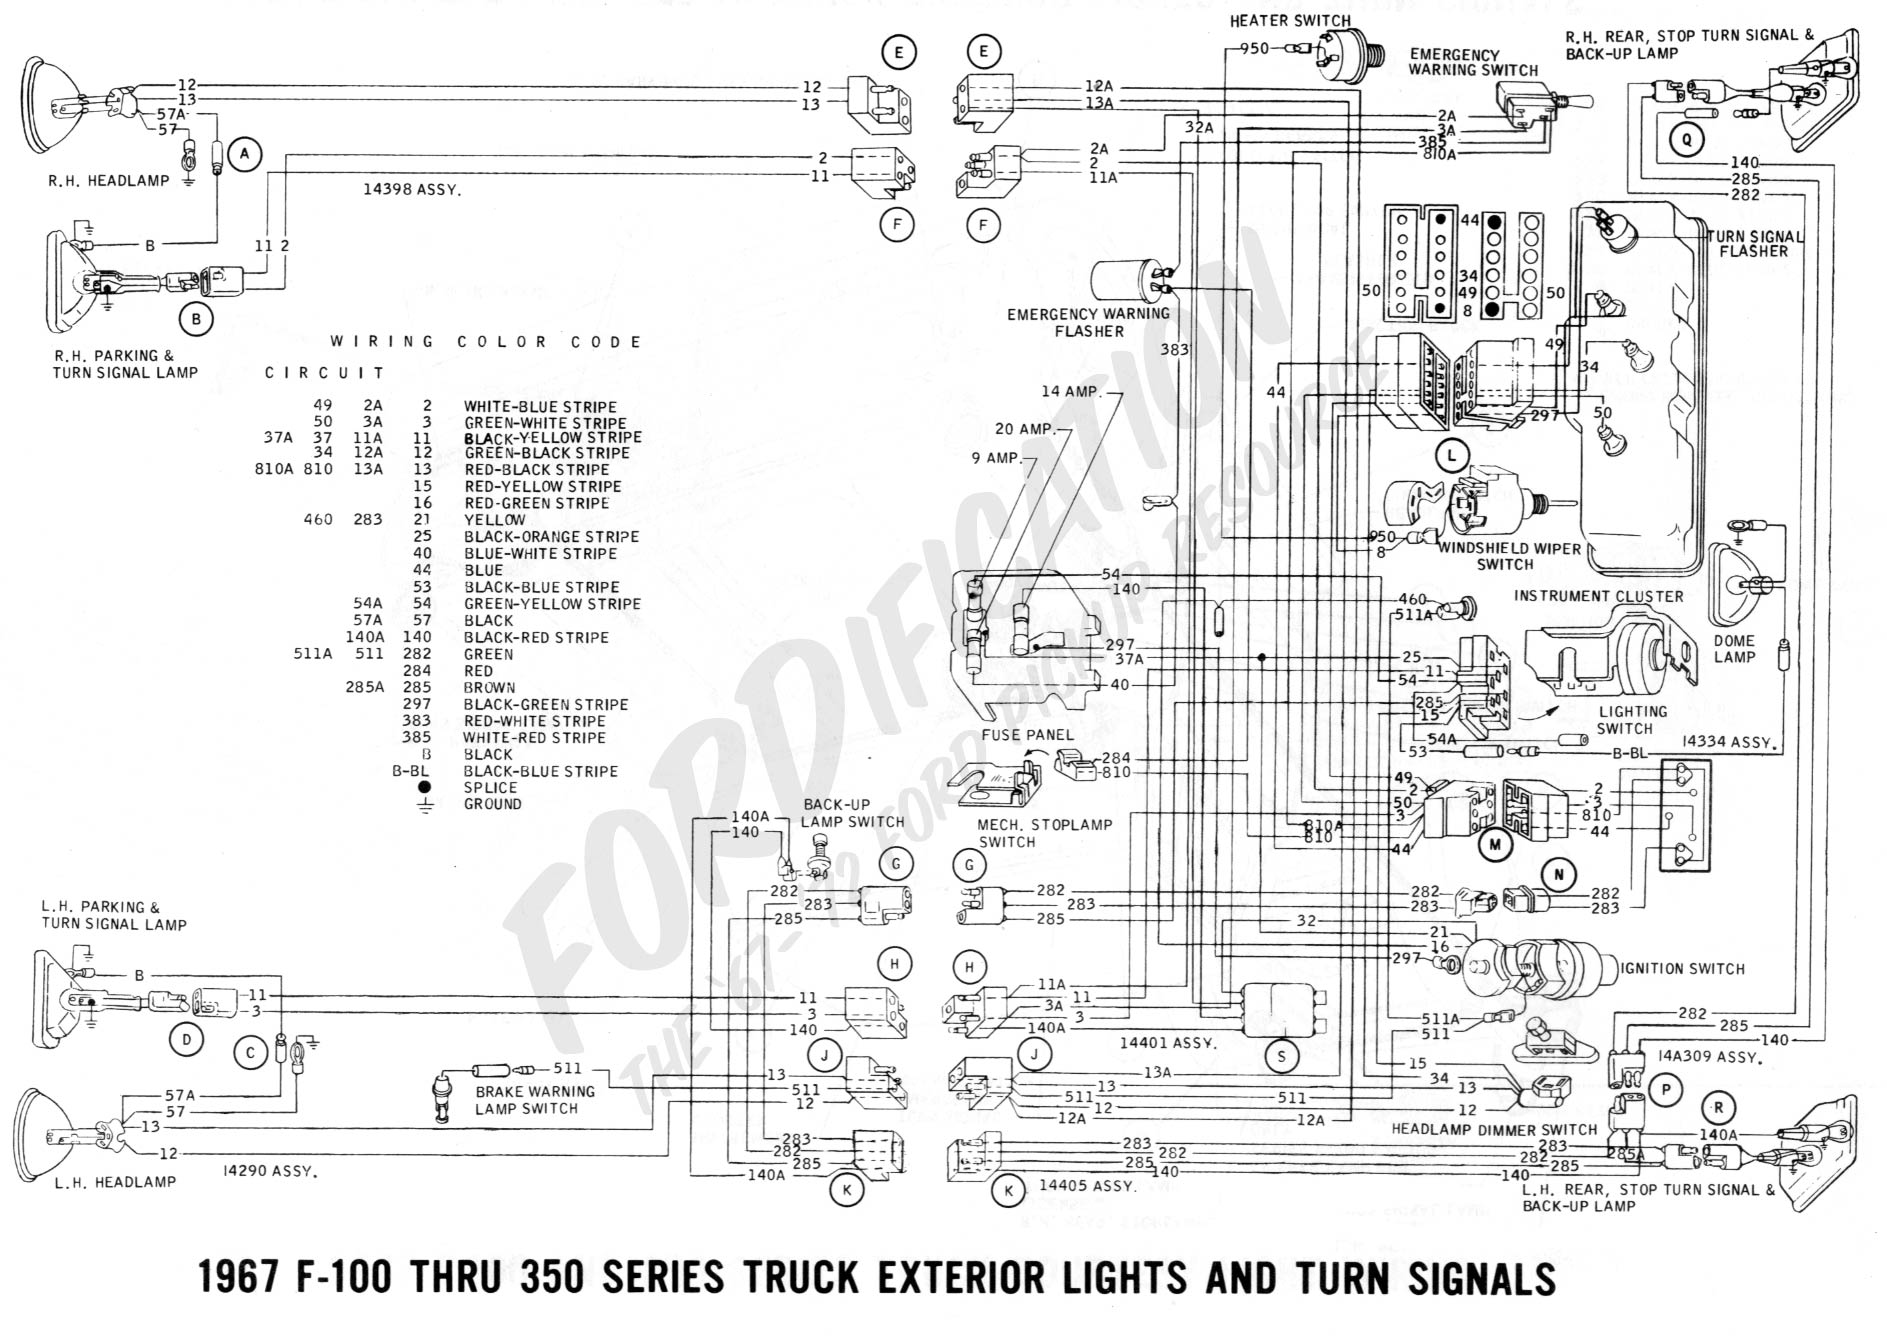 2001 Jeep Overdrive Diagram All Kind Of Wiring Diagrams Cj3b Ford Truck Technical Drawings And Schematics Section H Problems